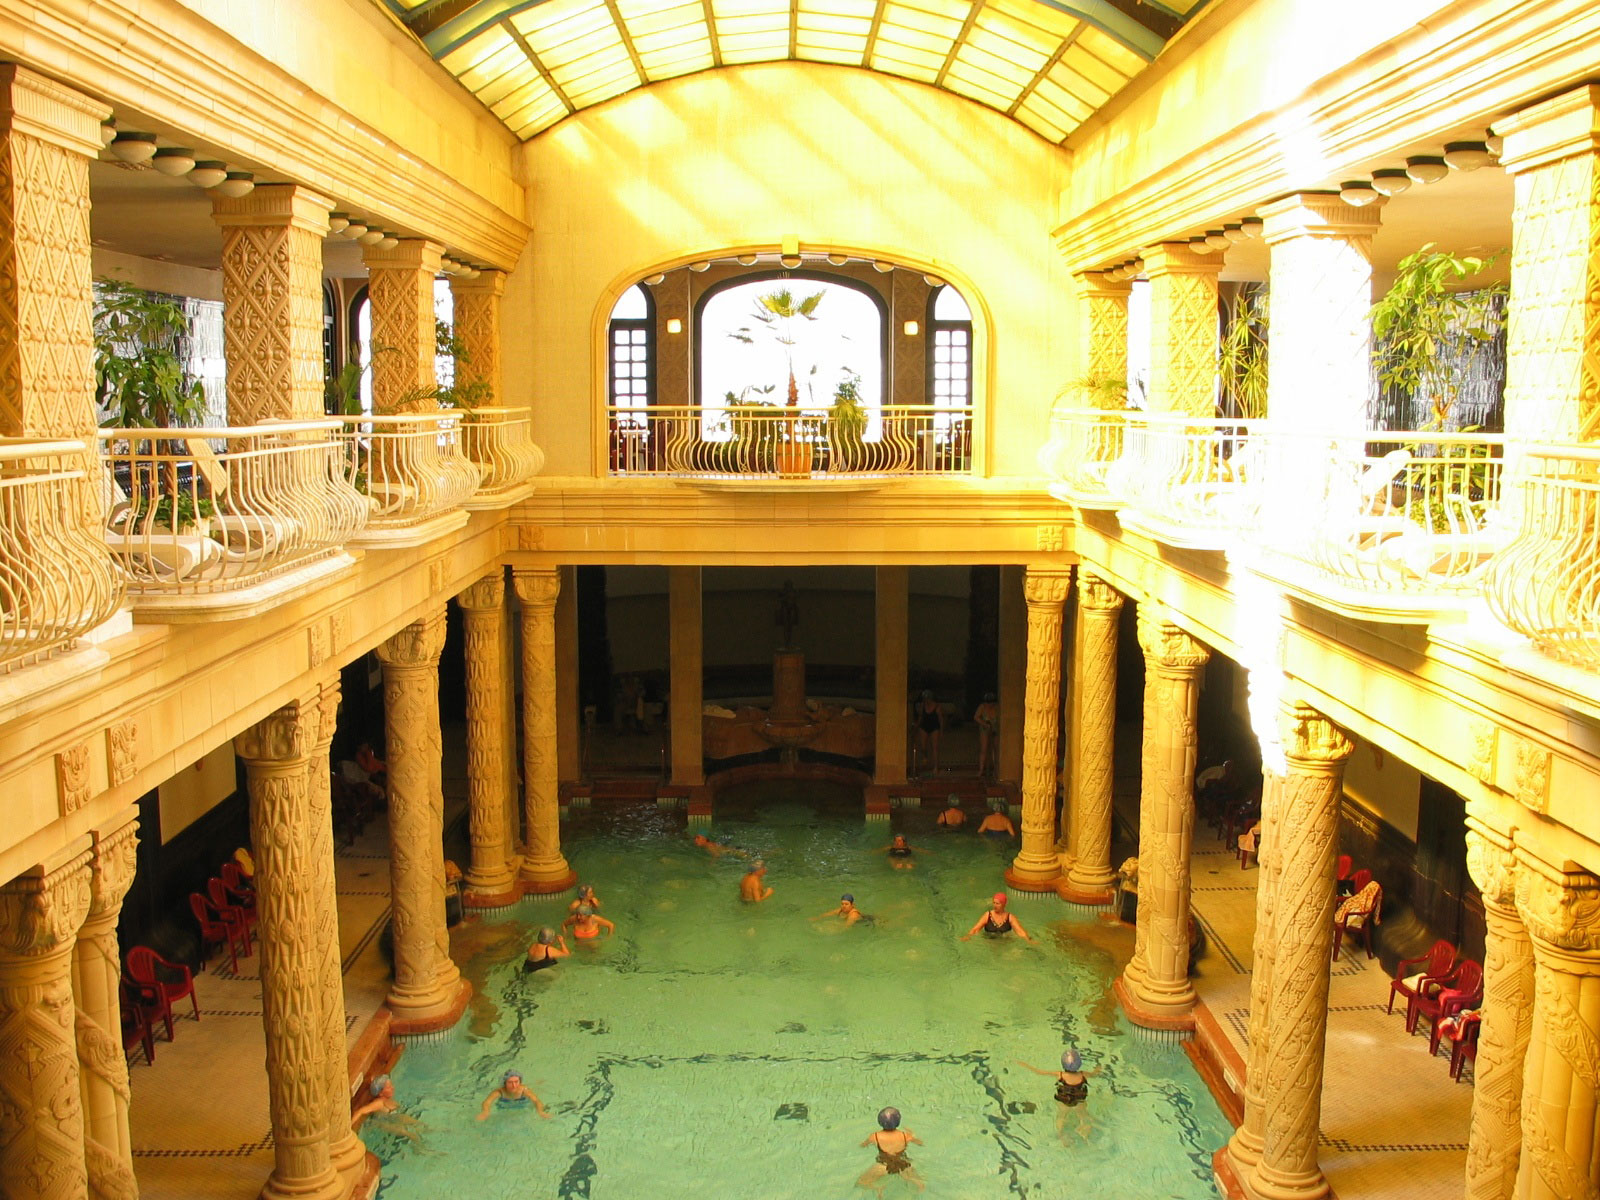 Piscina di lusso Gellert Thermal Baths